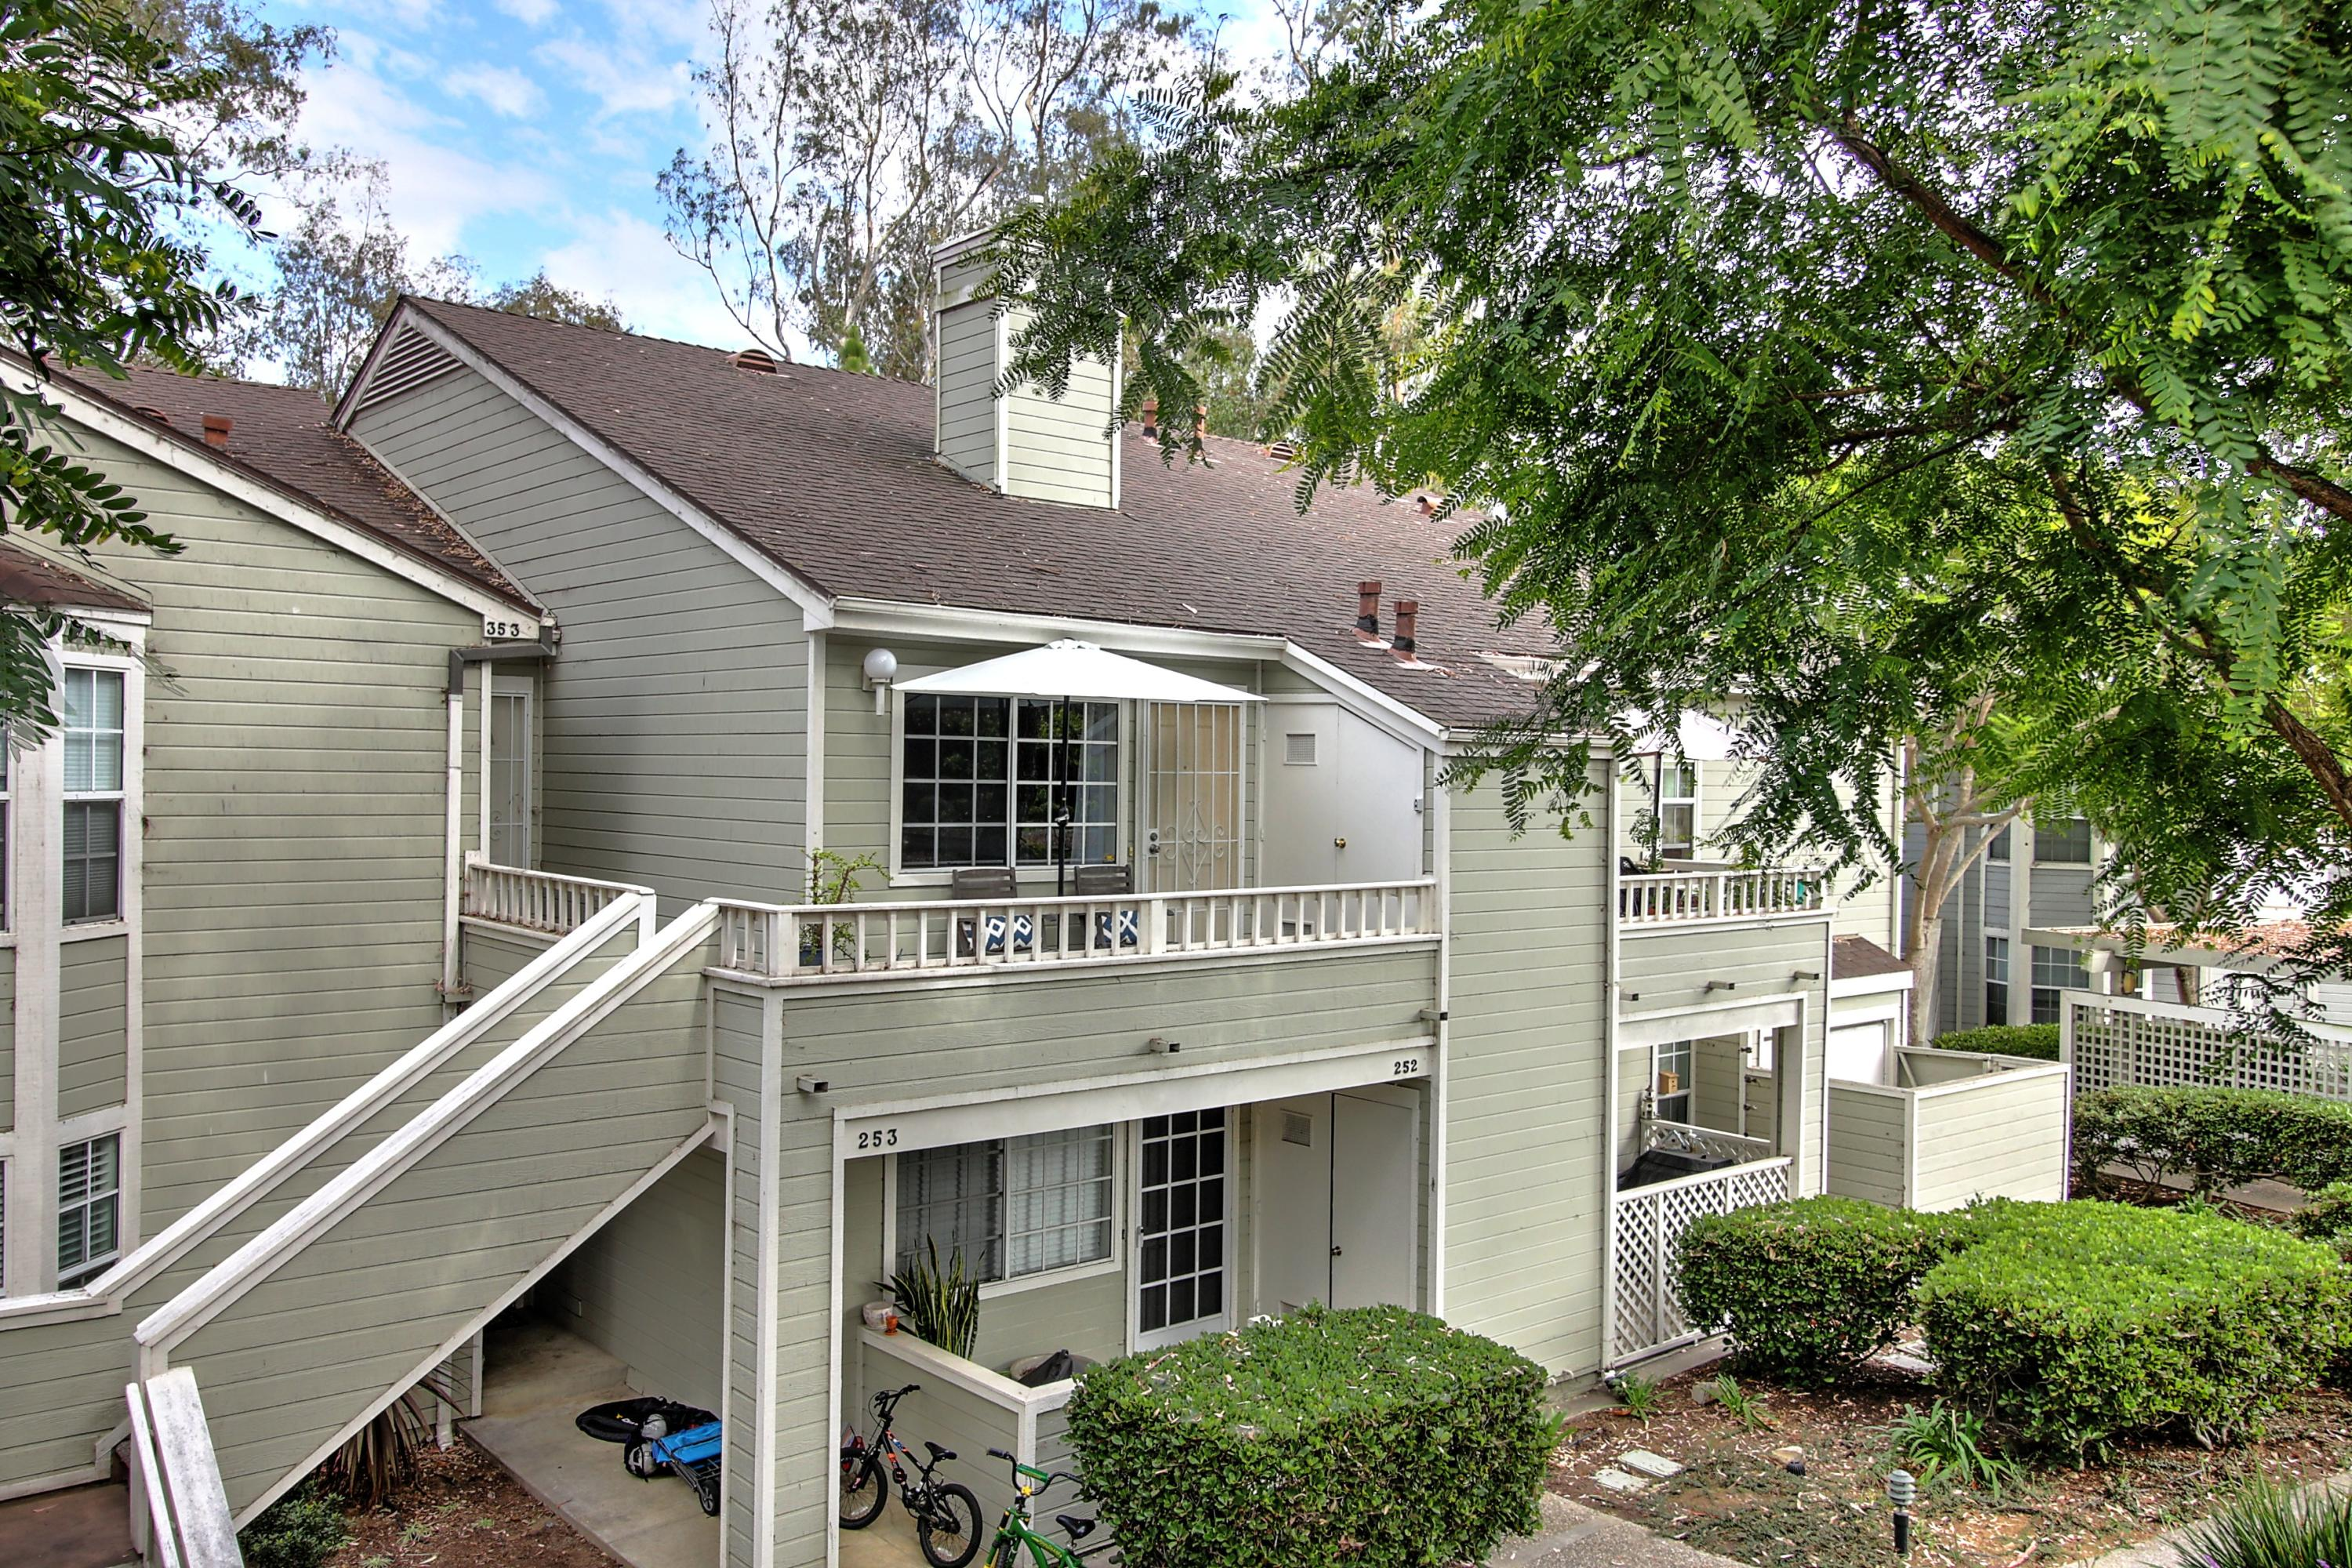 Property photo for 7634 Hollister Ave #352 Goleta, California 93117 - 18-3788